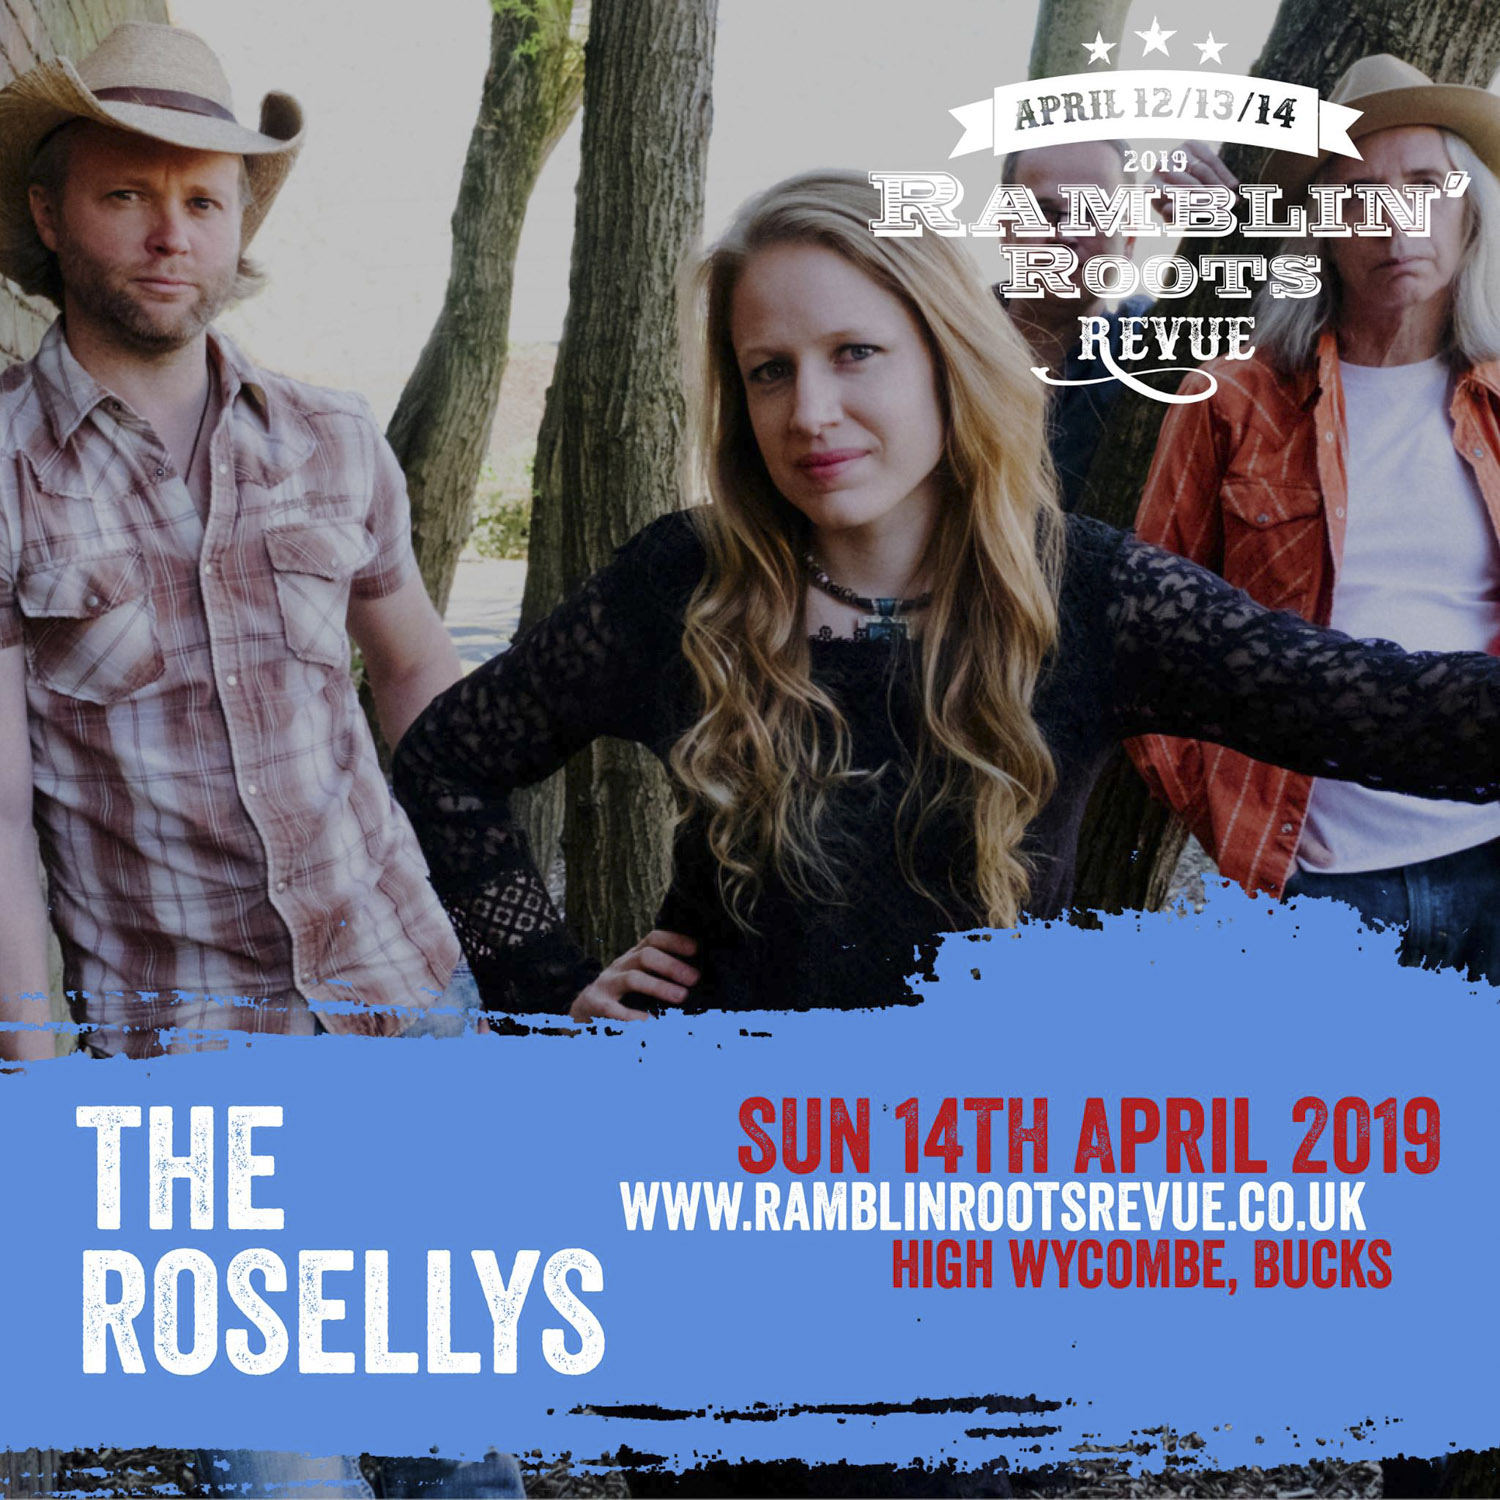 Ramblin' Roots Revue - The Rosellys